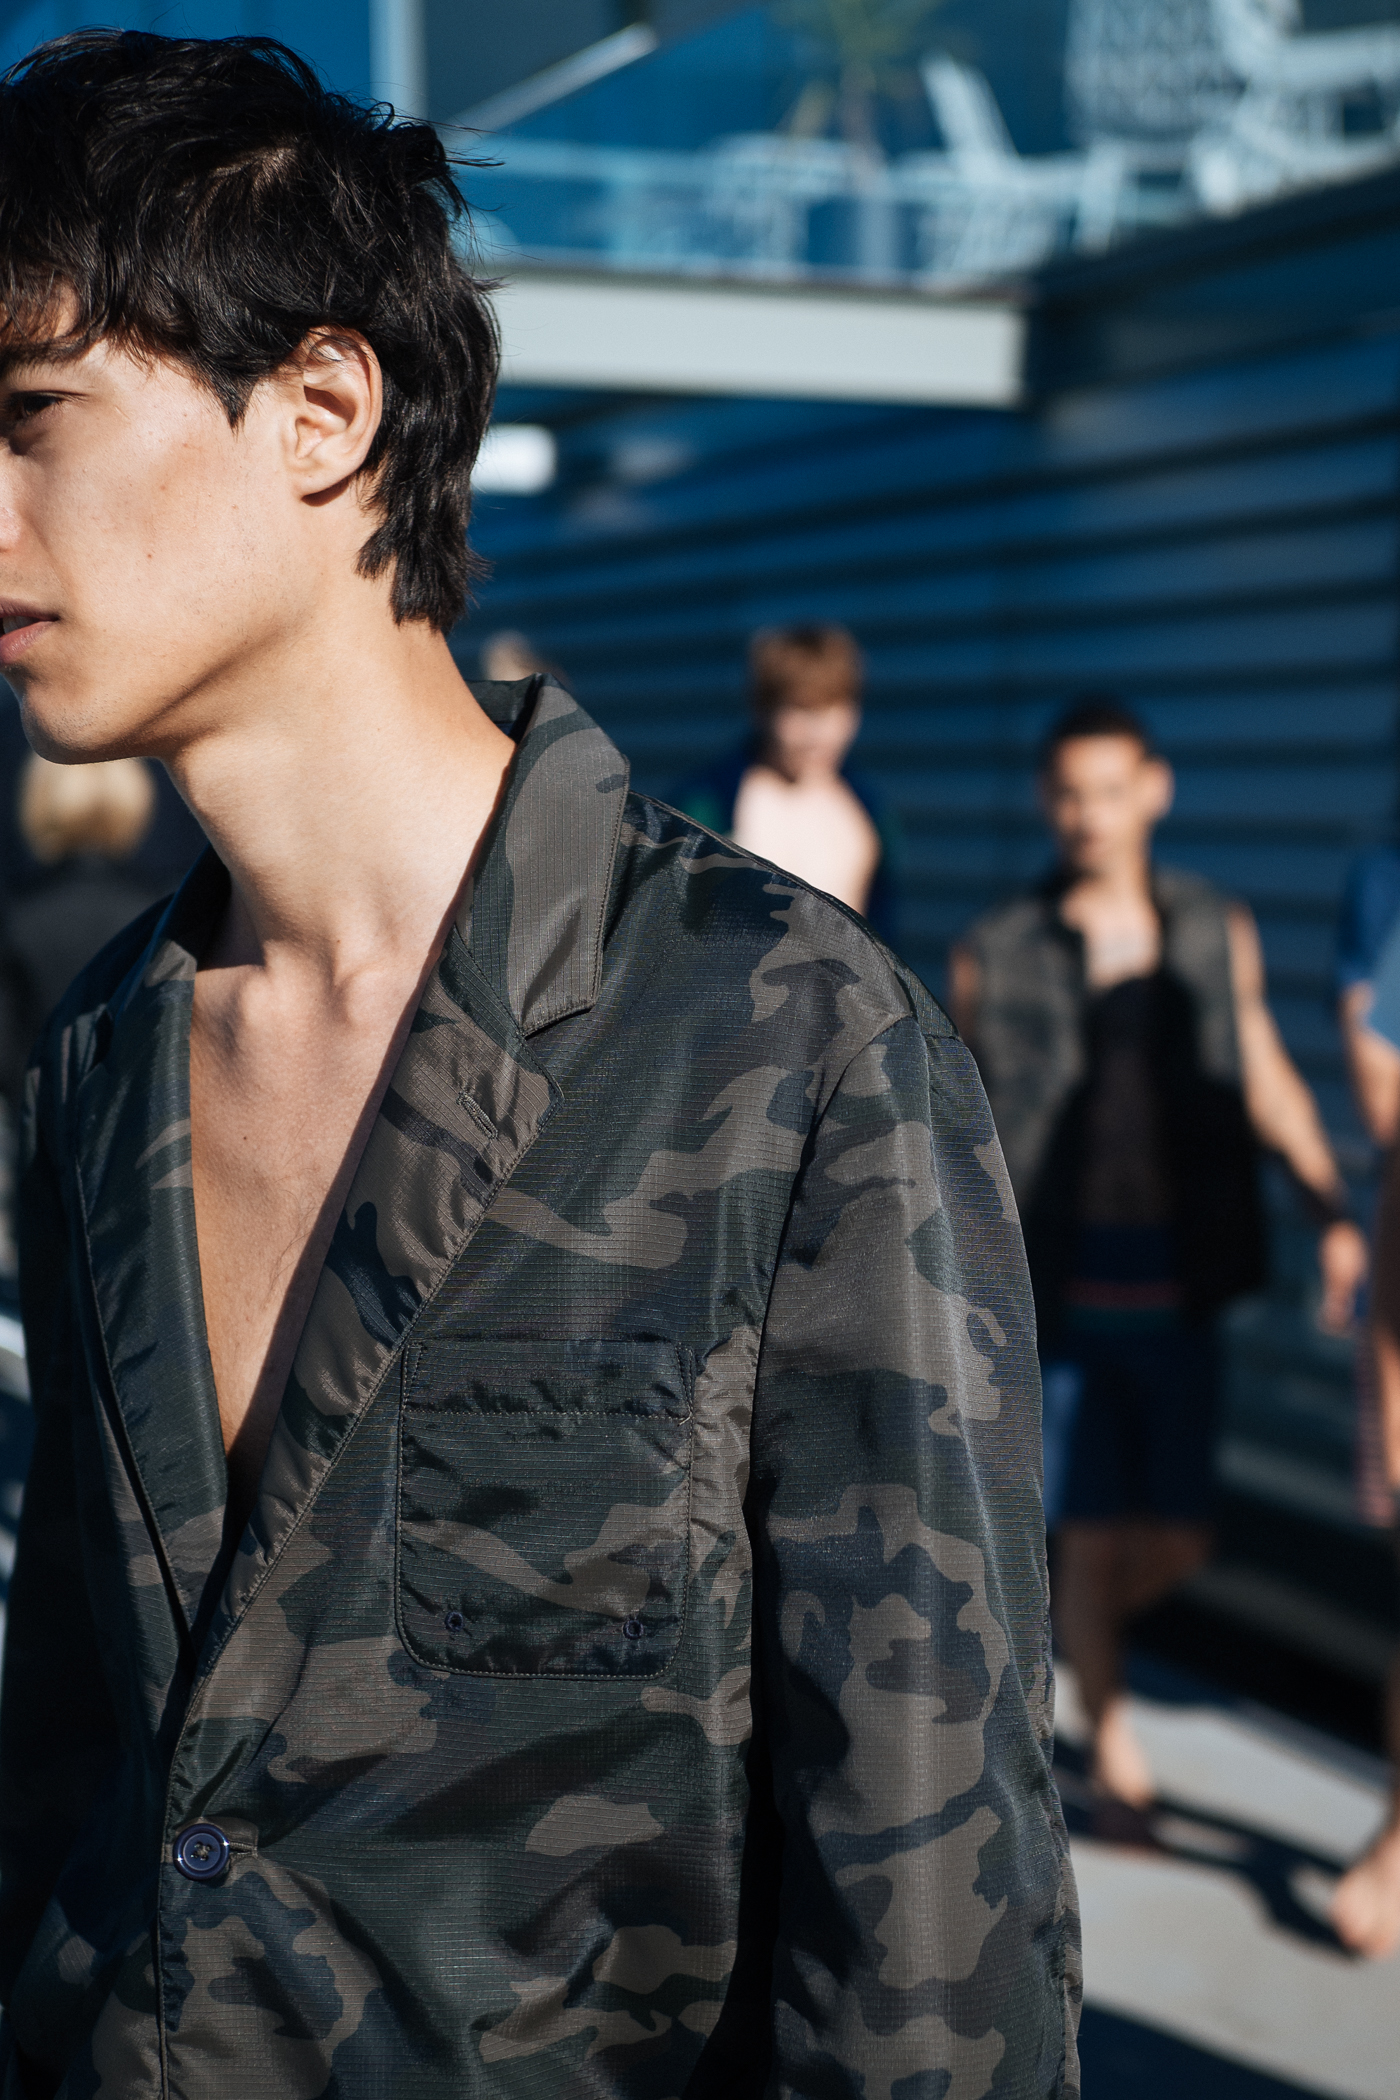 Resort camo at  Katama  during MBFWA, captured on my  OM-D E-M1 Mark II.    Available from  Digi Direct  stores nationally .